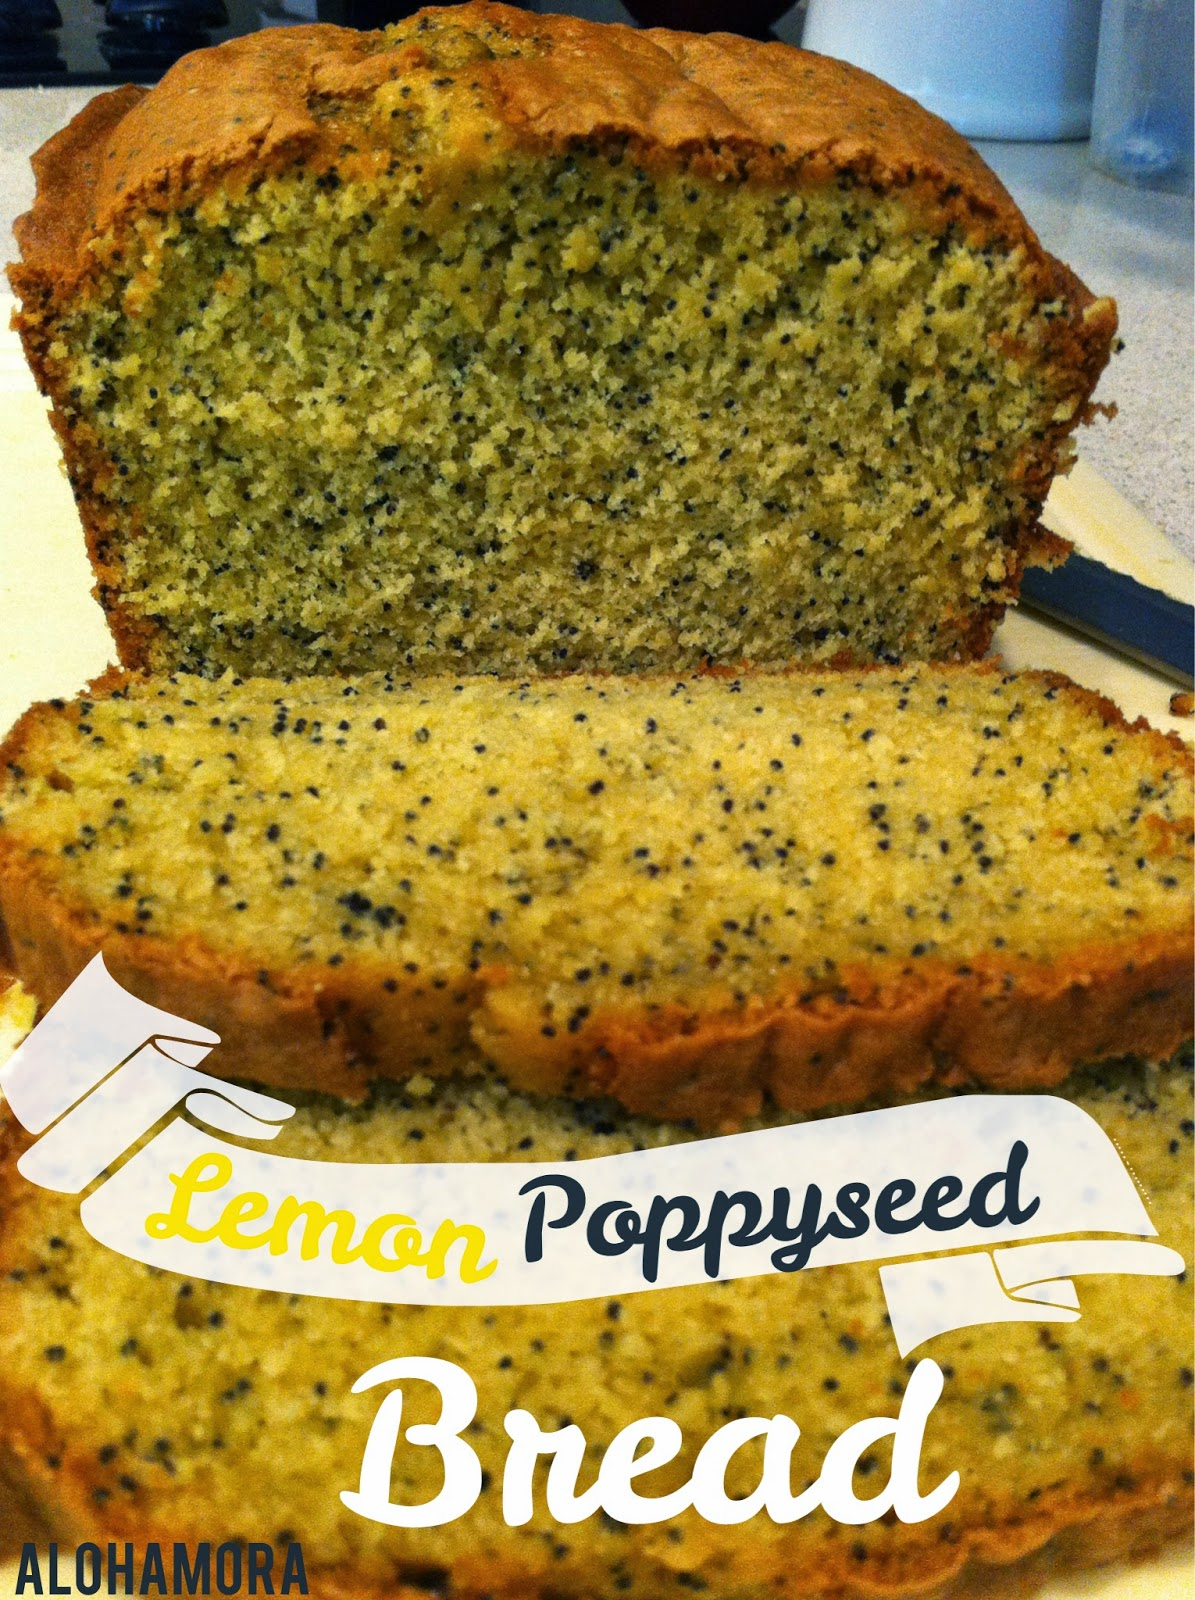 Easy Lemon Poppyseed Bread uses a cake mix and tastes delicious! Alohamora Open a Book http://alohamoraopenabook.blogspot.com/